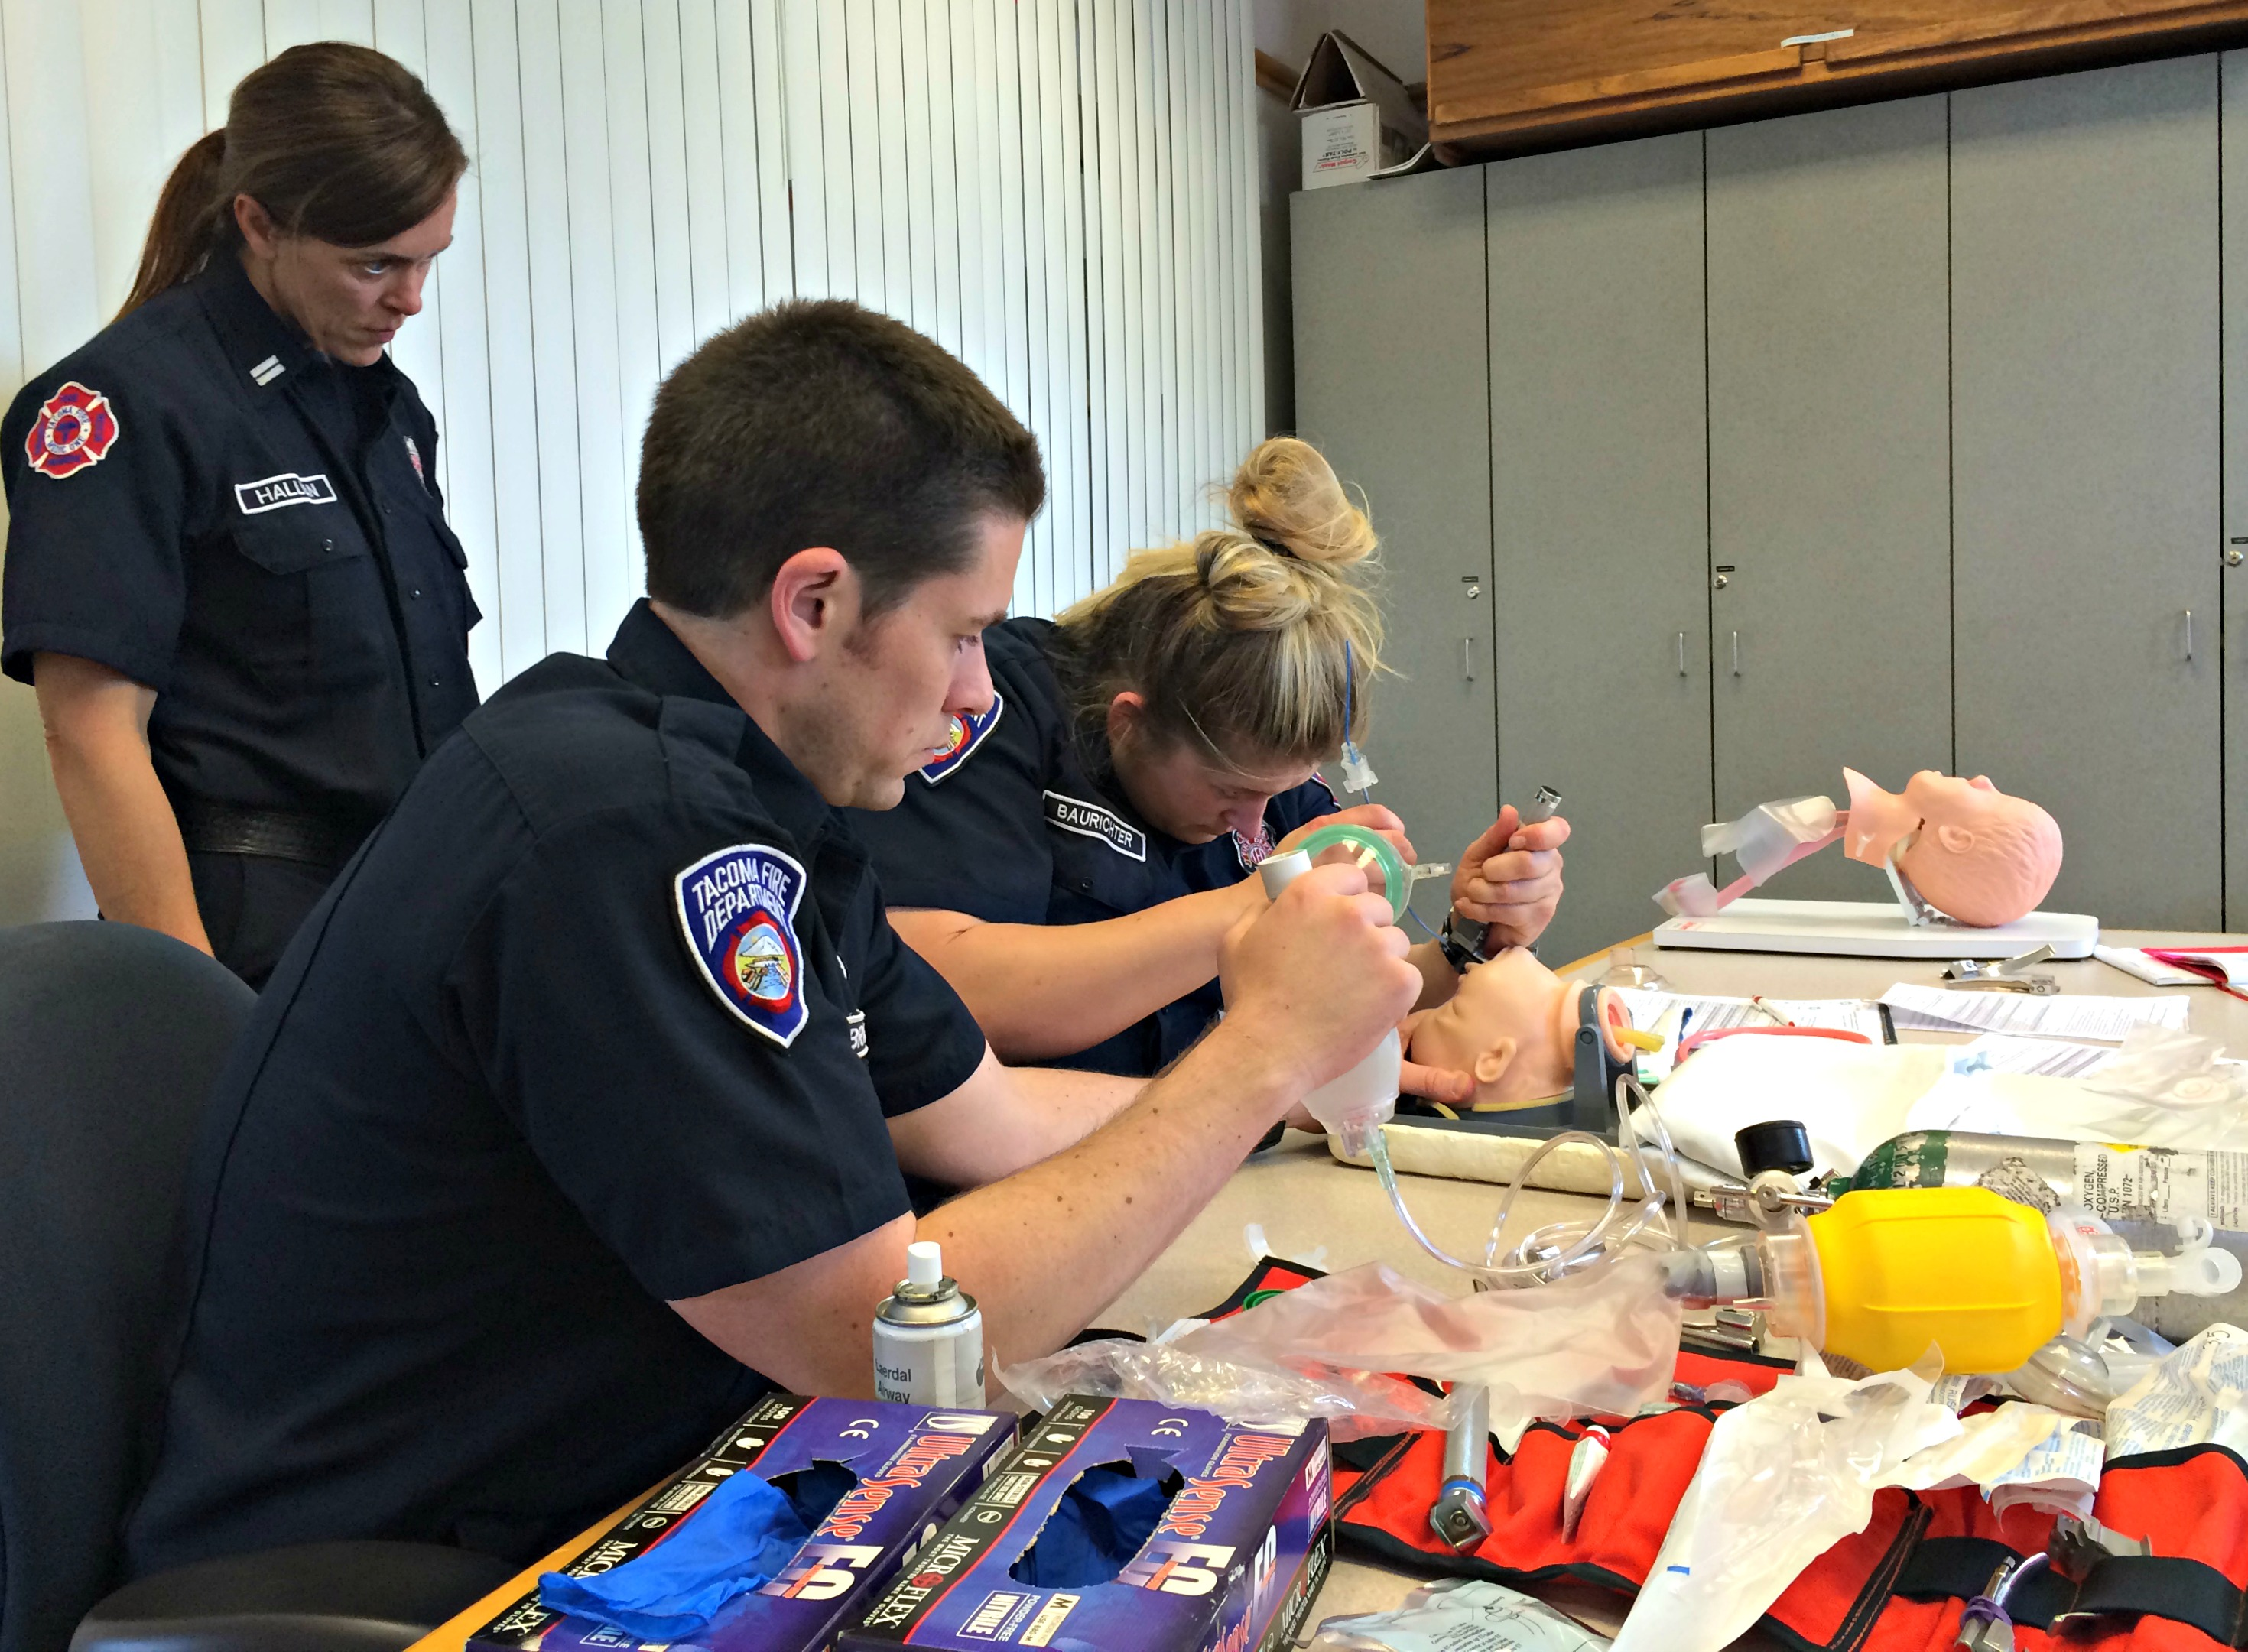 Paramedics in training class